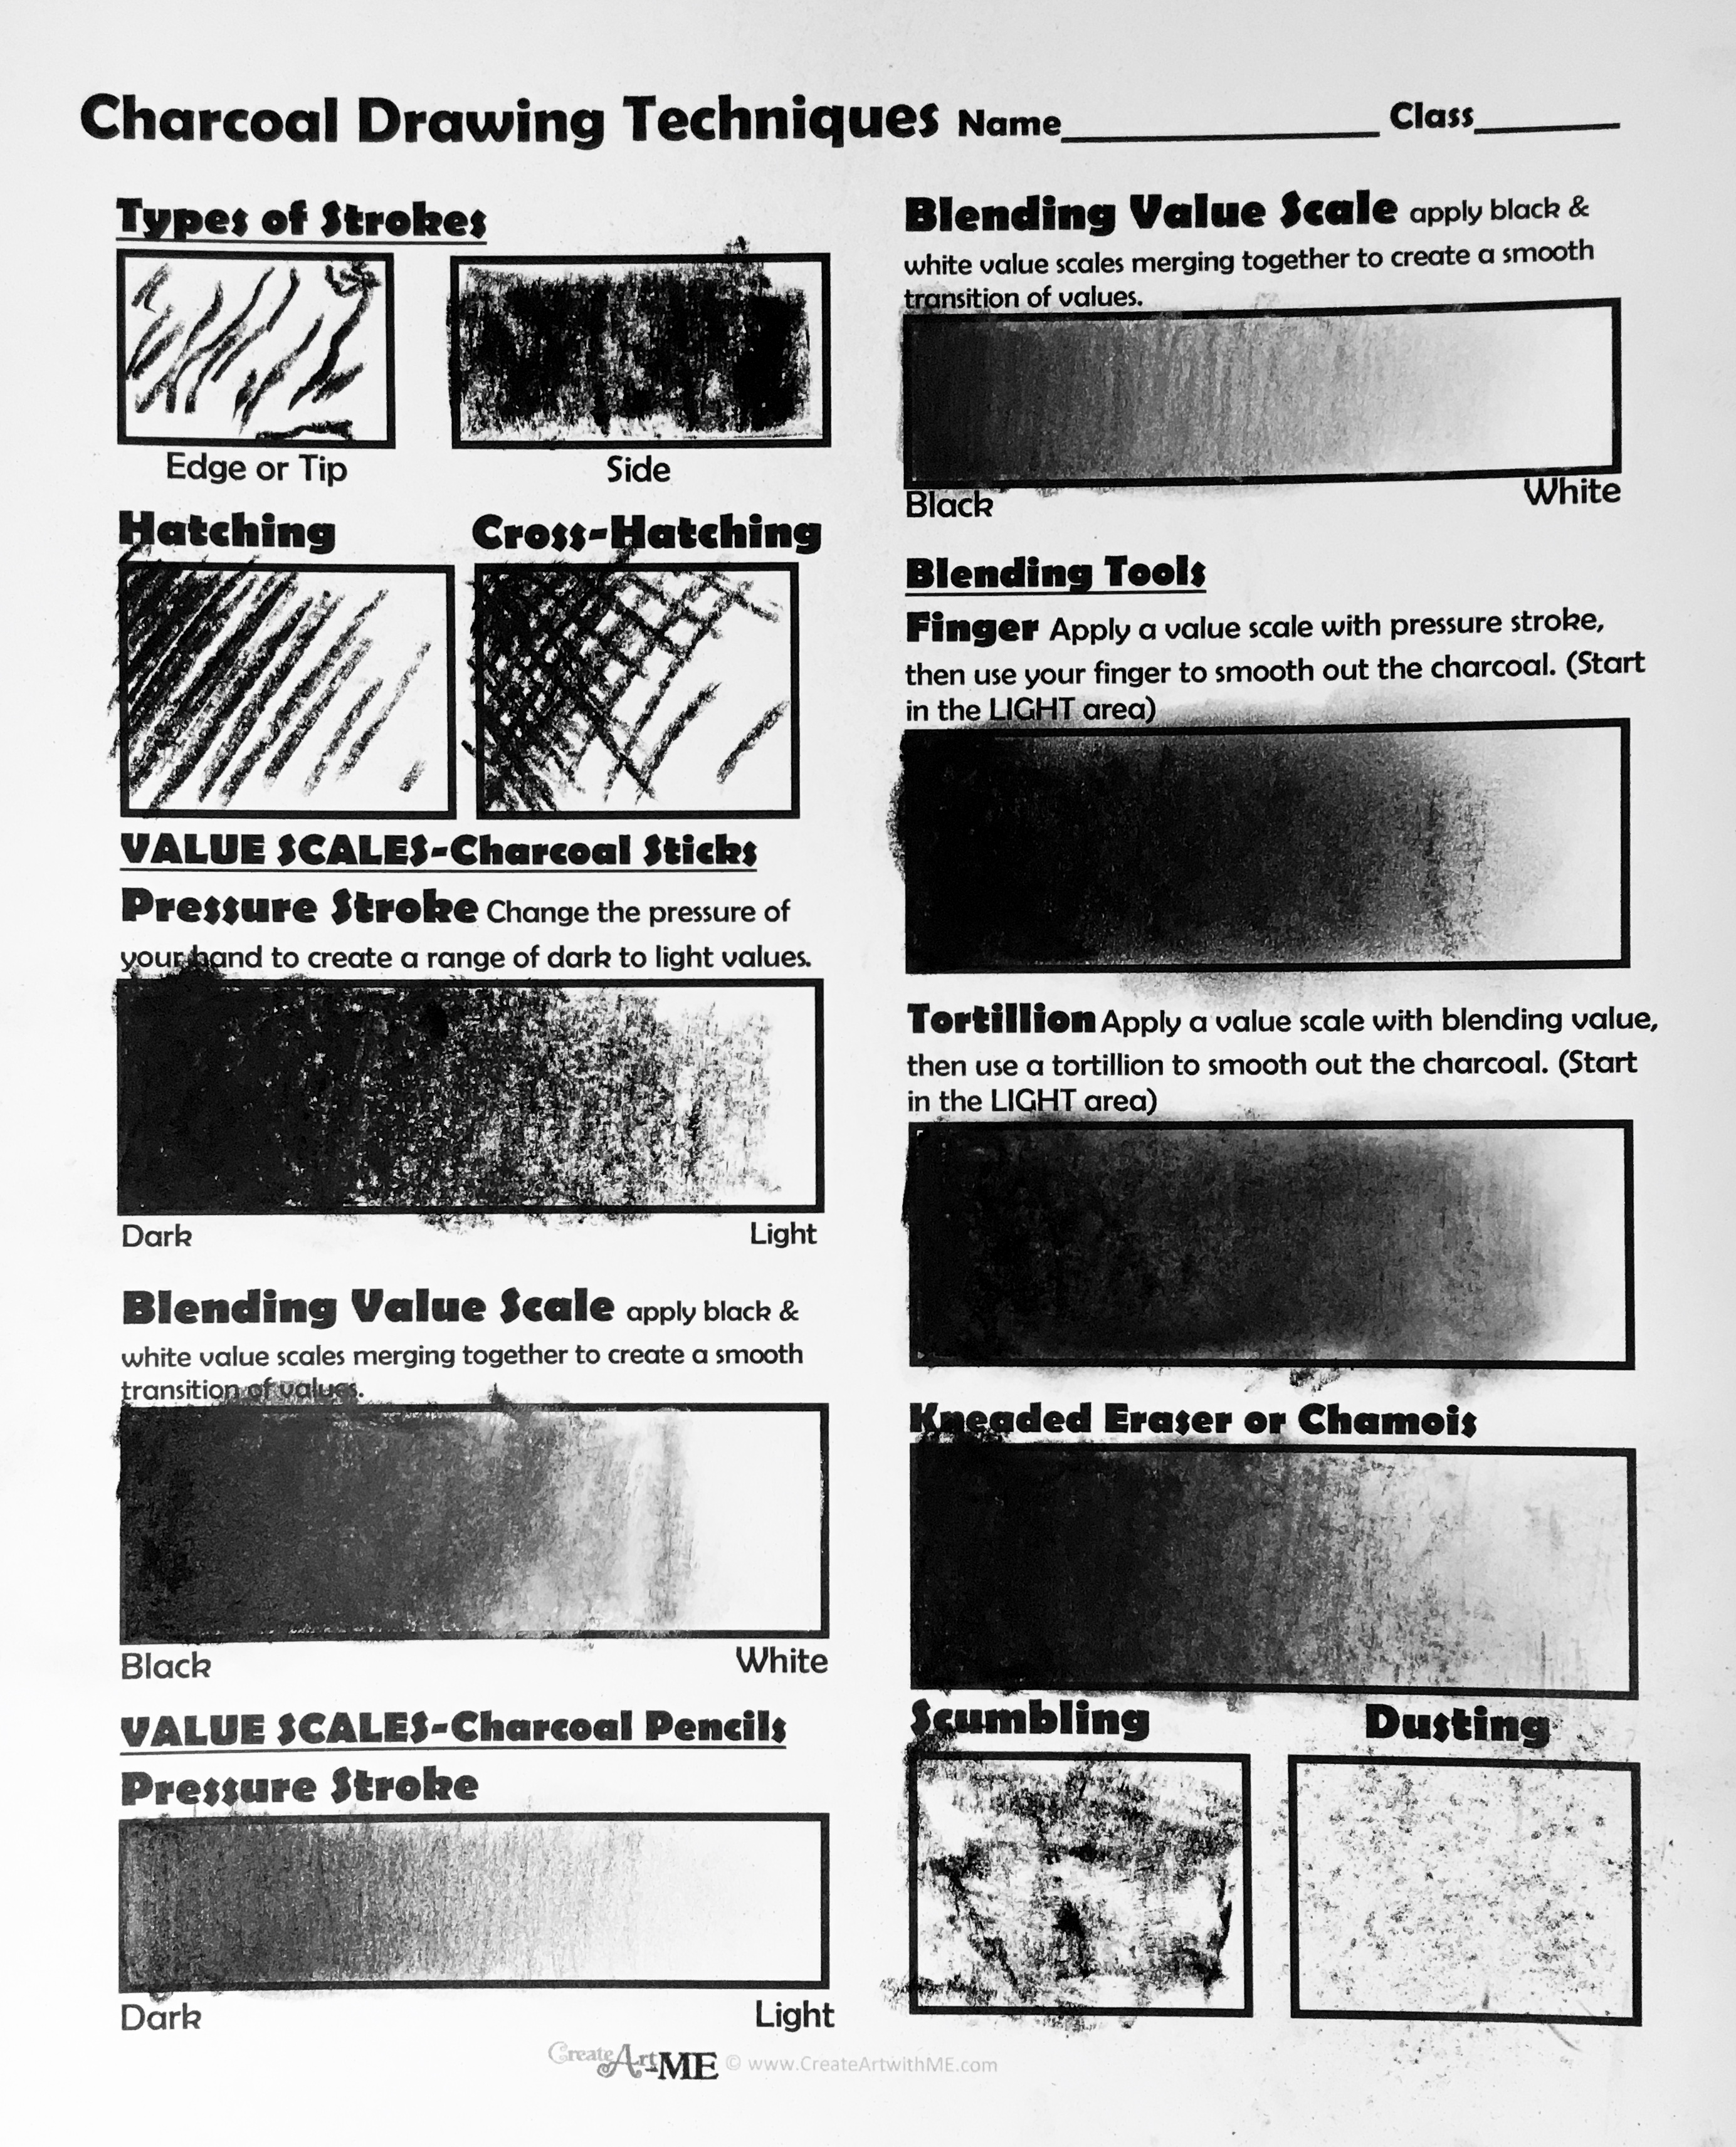 charcoal drawing techniques lesson plan  u0026 worksheet